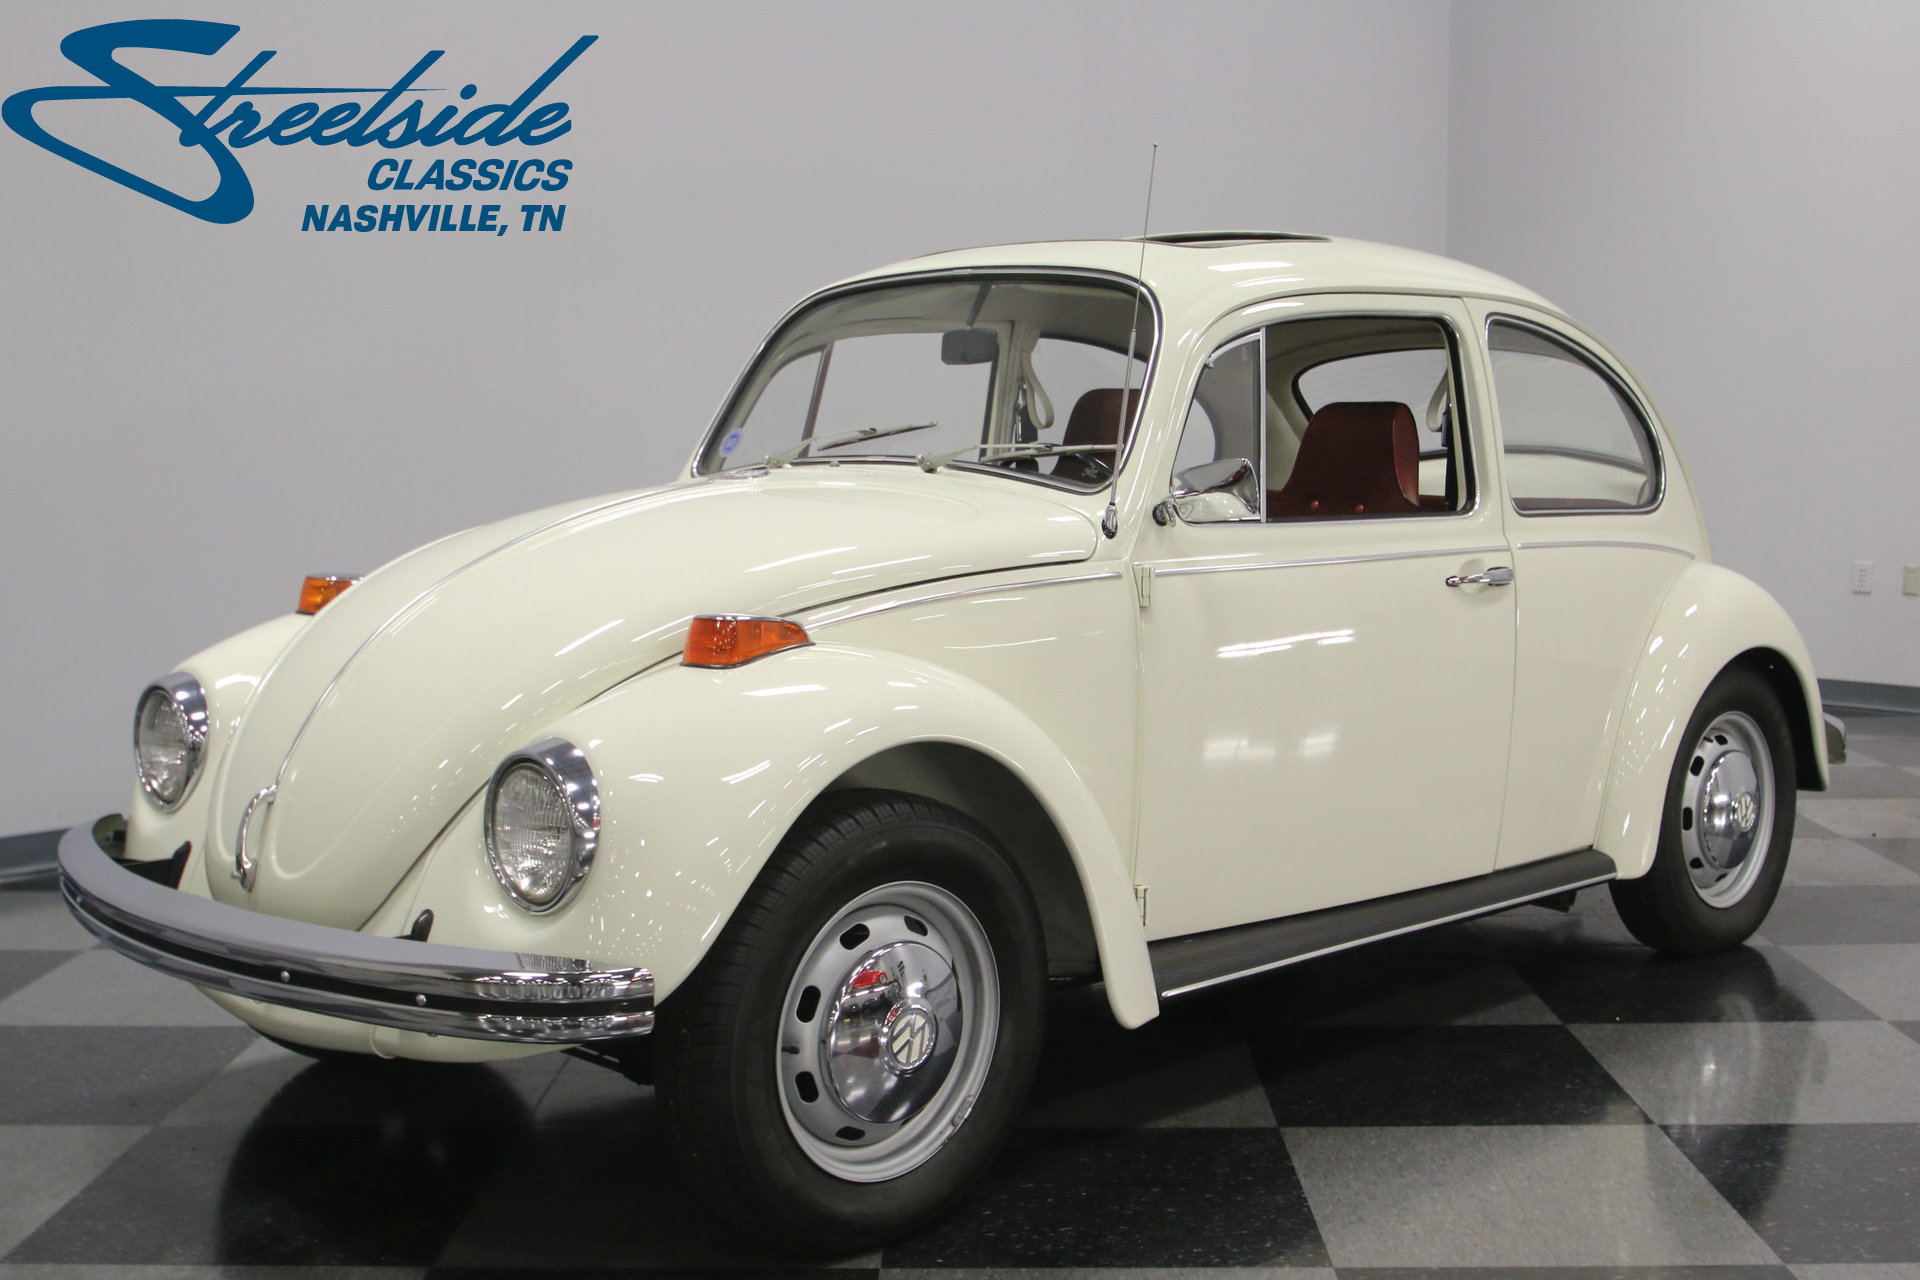 1970 volkswagen beetle streetside classics the nation 39 s trusted classic car consignment dealer. Black Bedroom Furniture Sets. Home Design Ideas